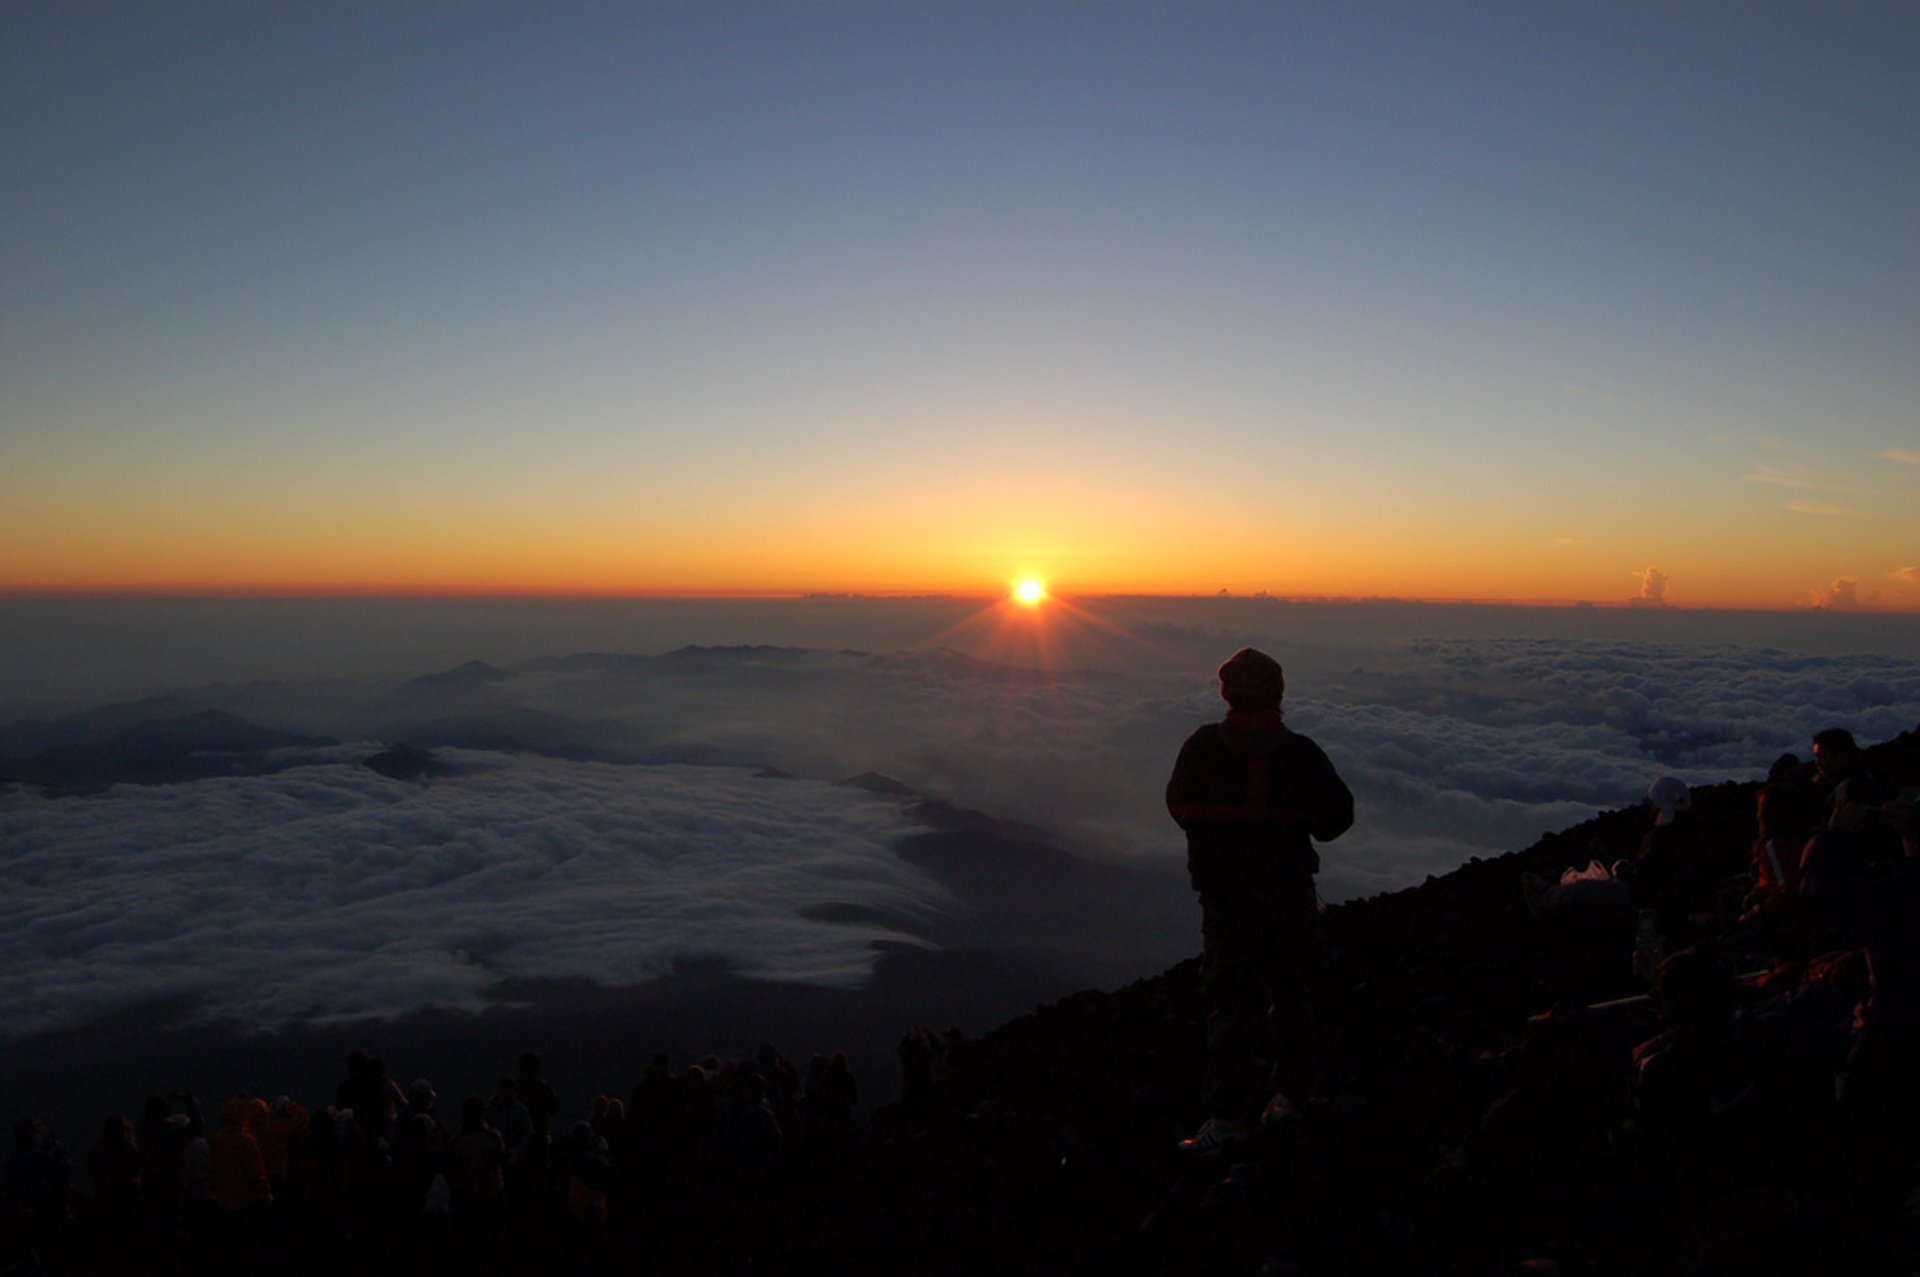 Climbing Mount Fuji in Japan - Best Time